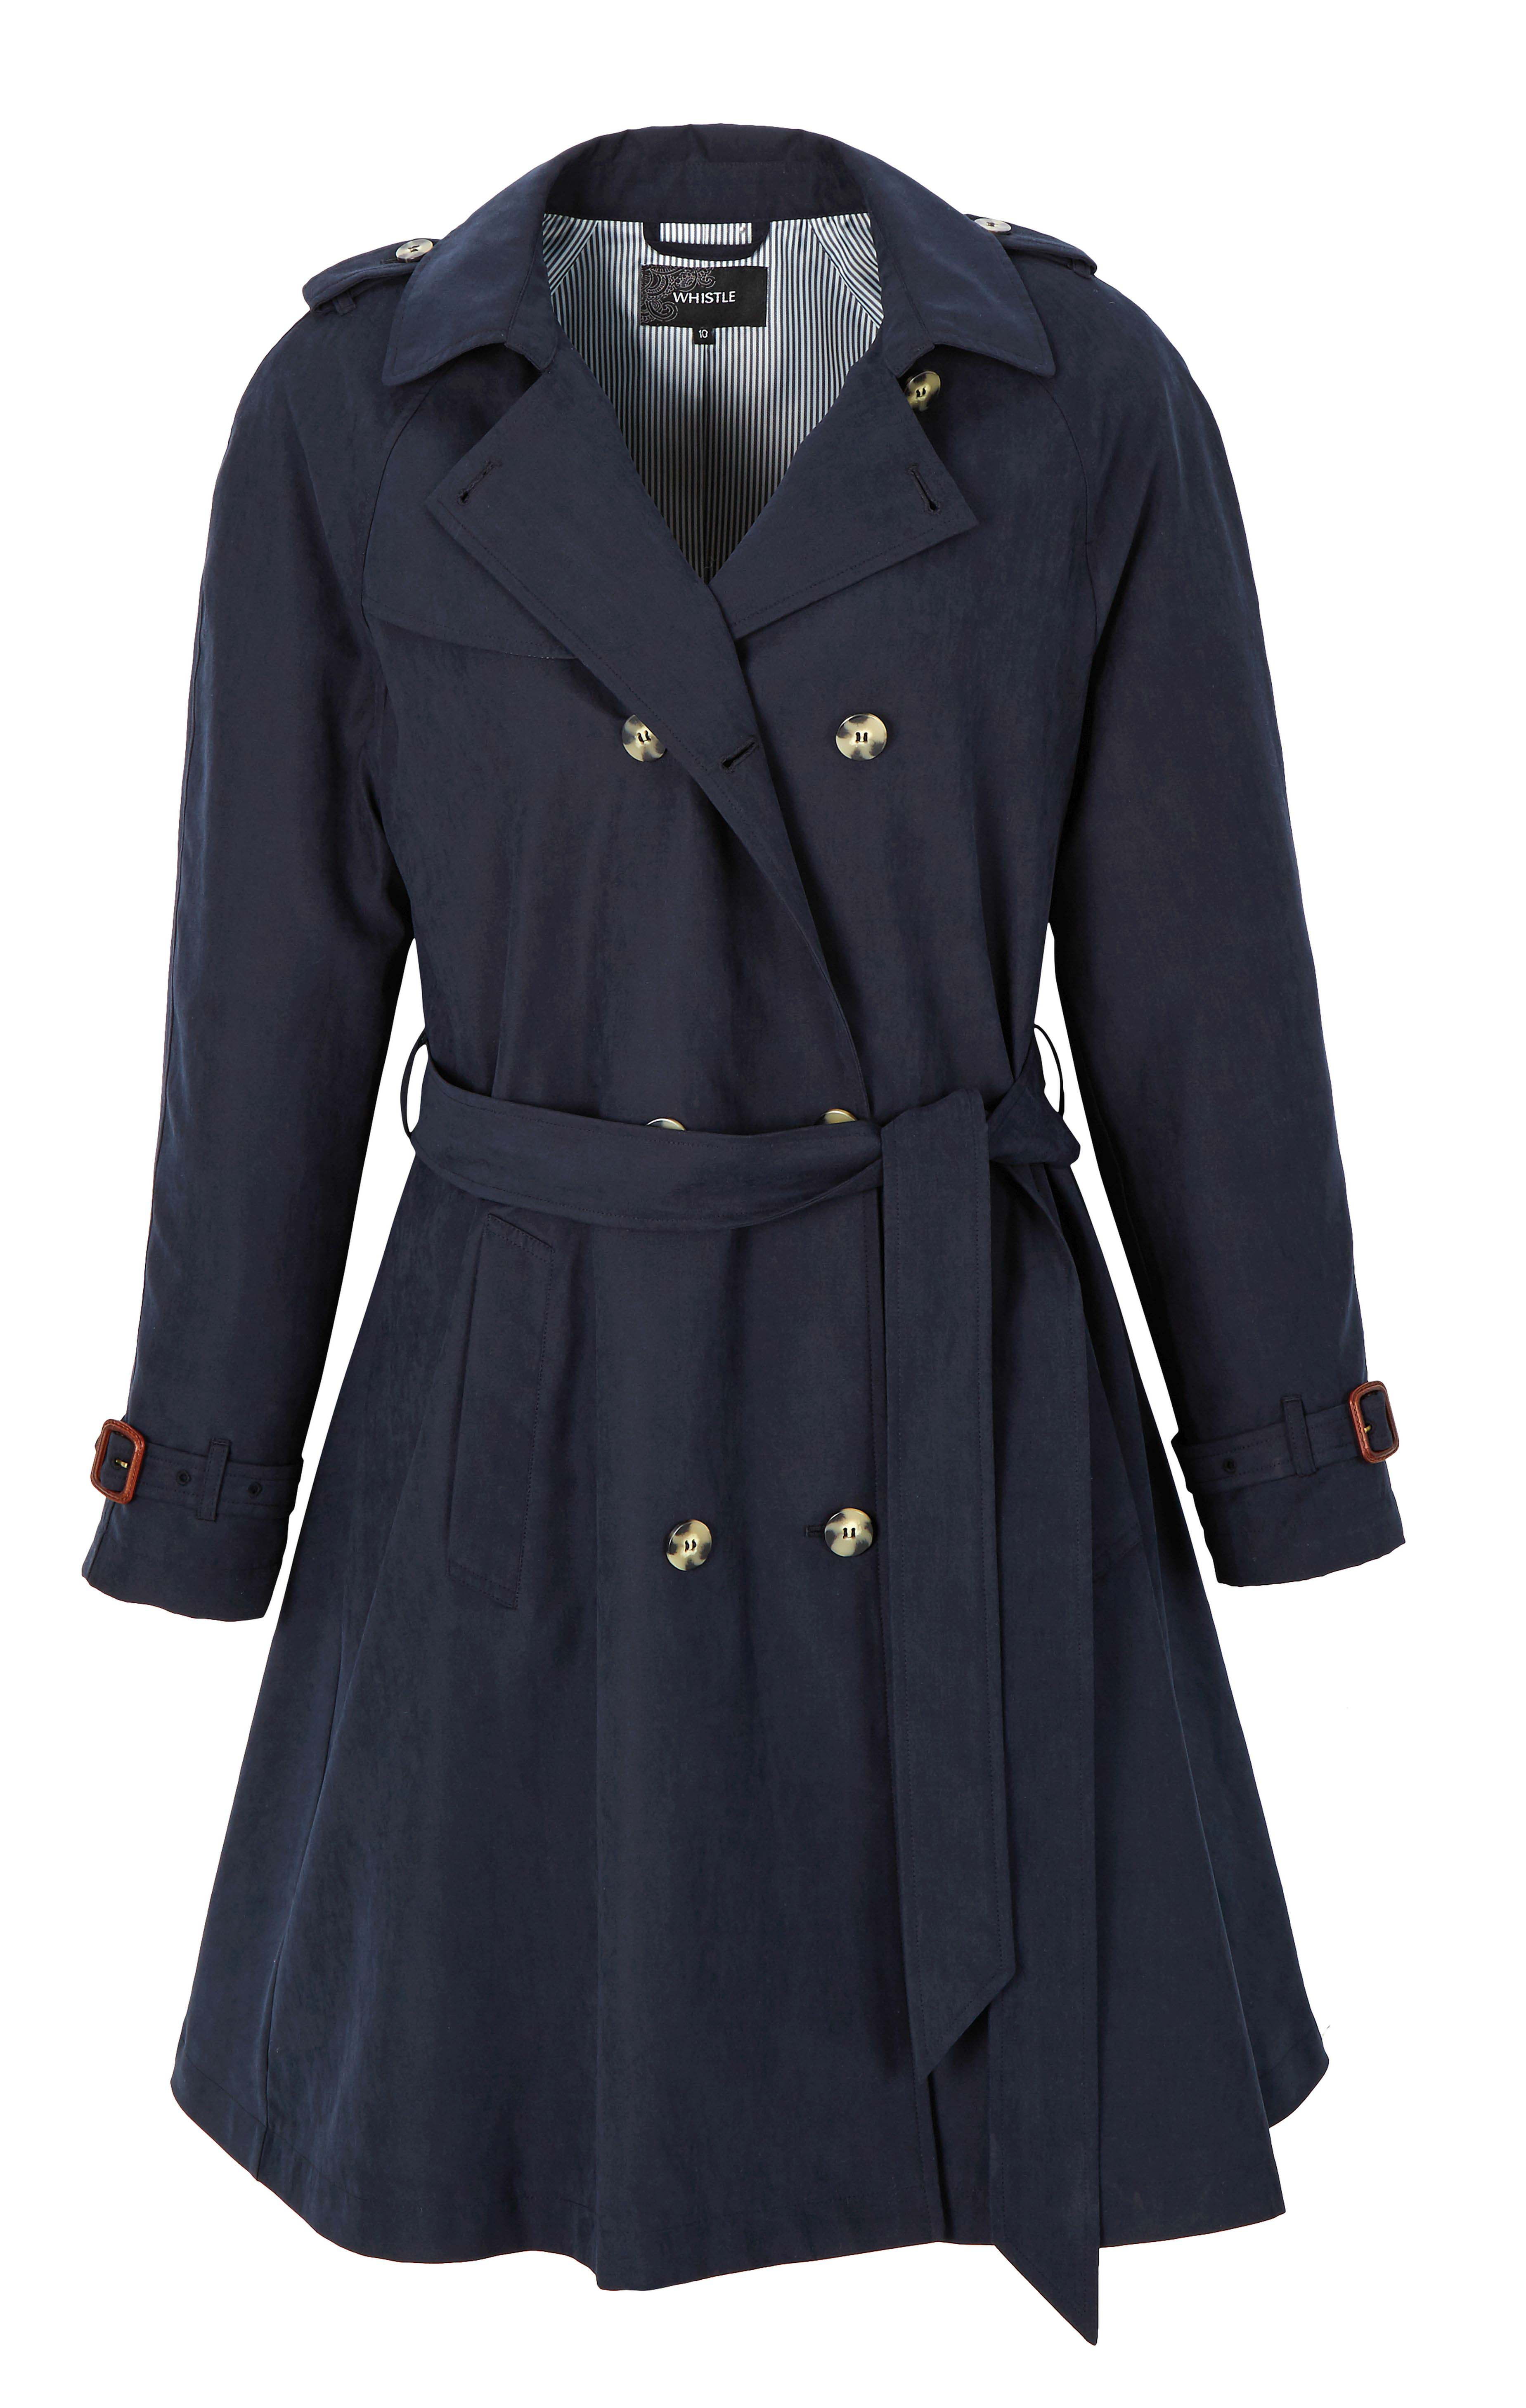 6085525 Whistle Trench Coat $149.99 Instore March 09 2016